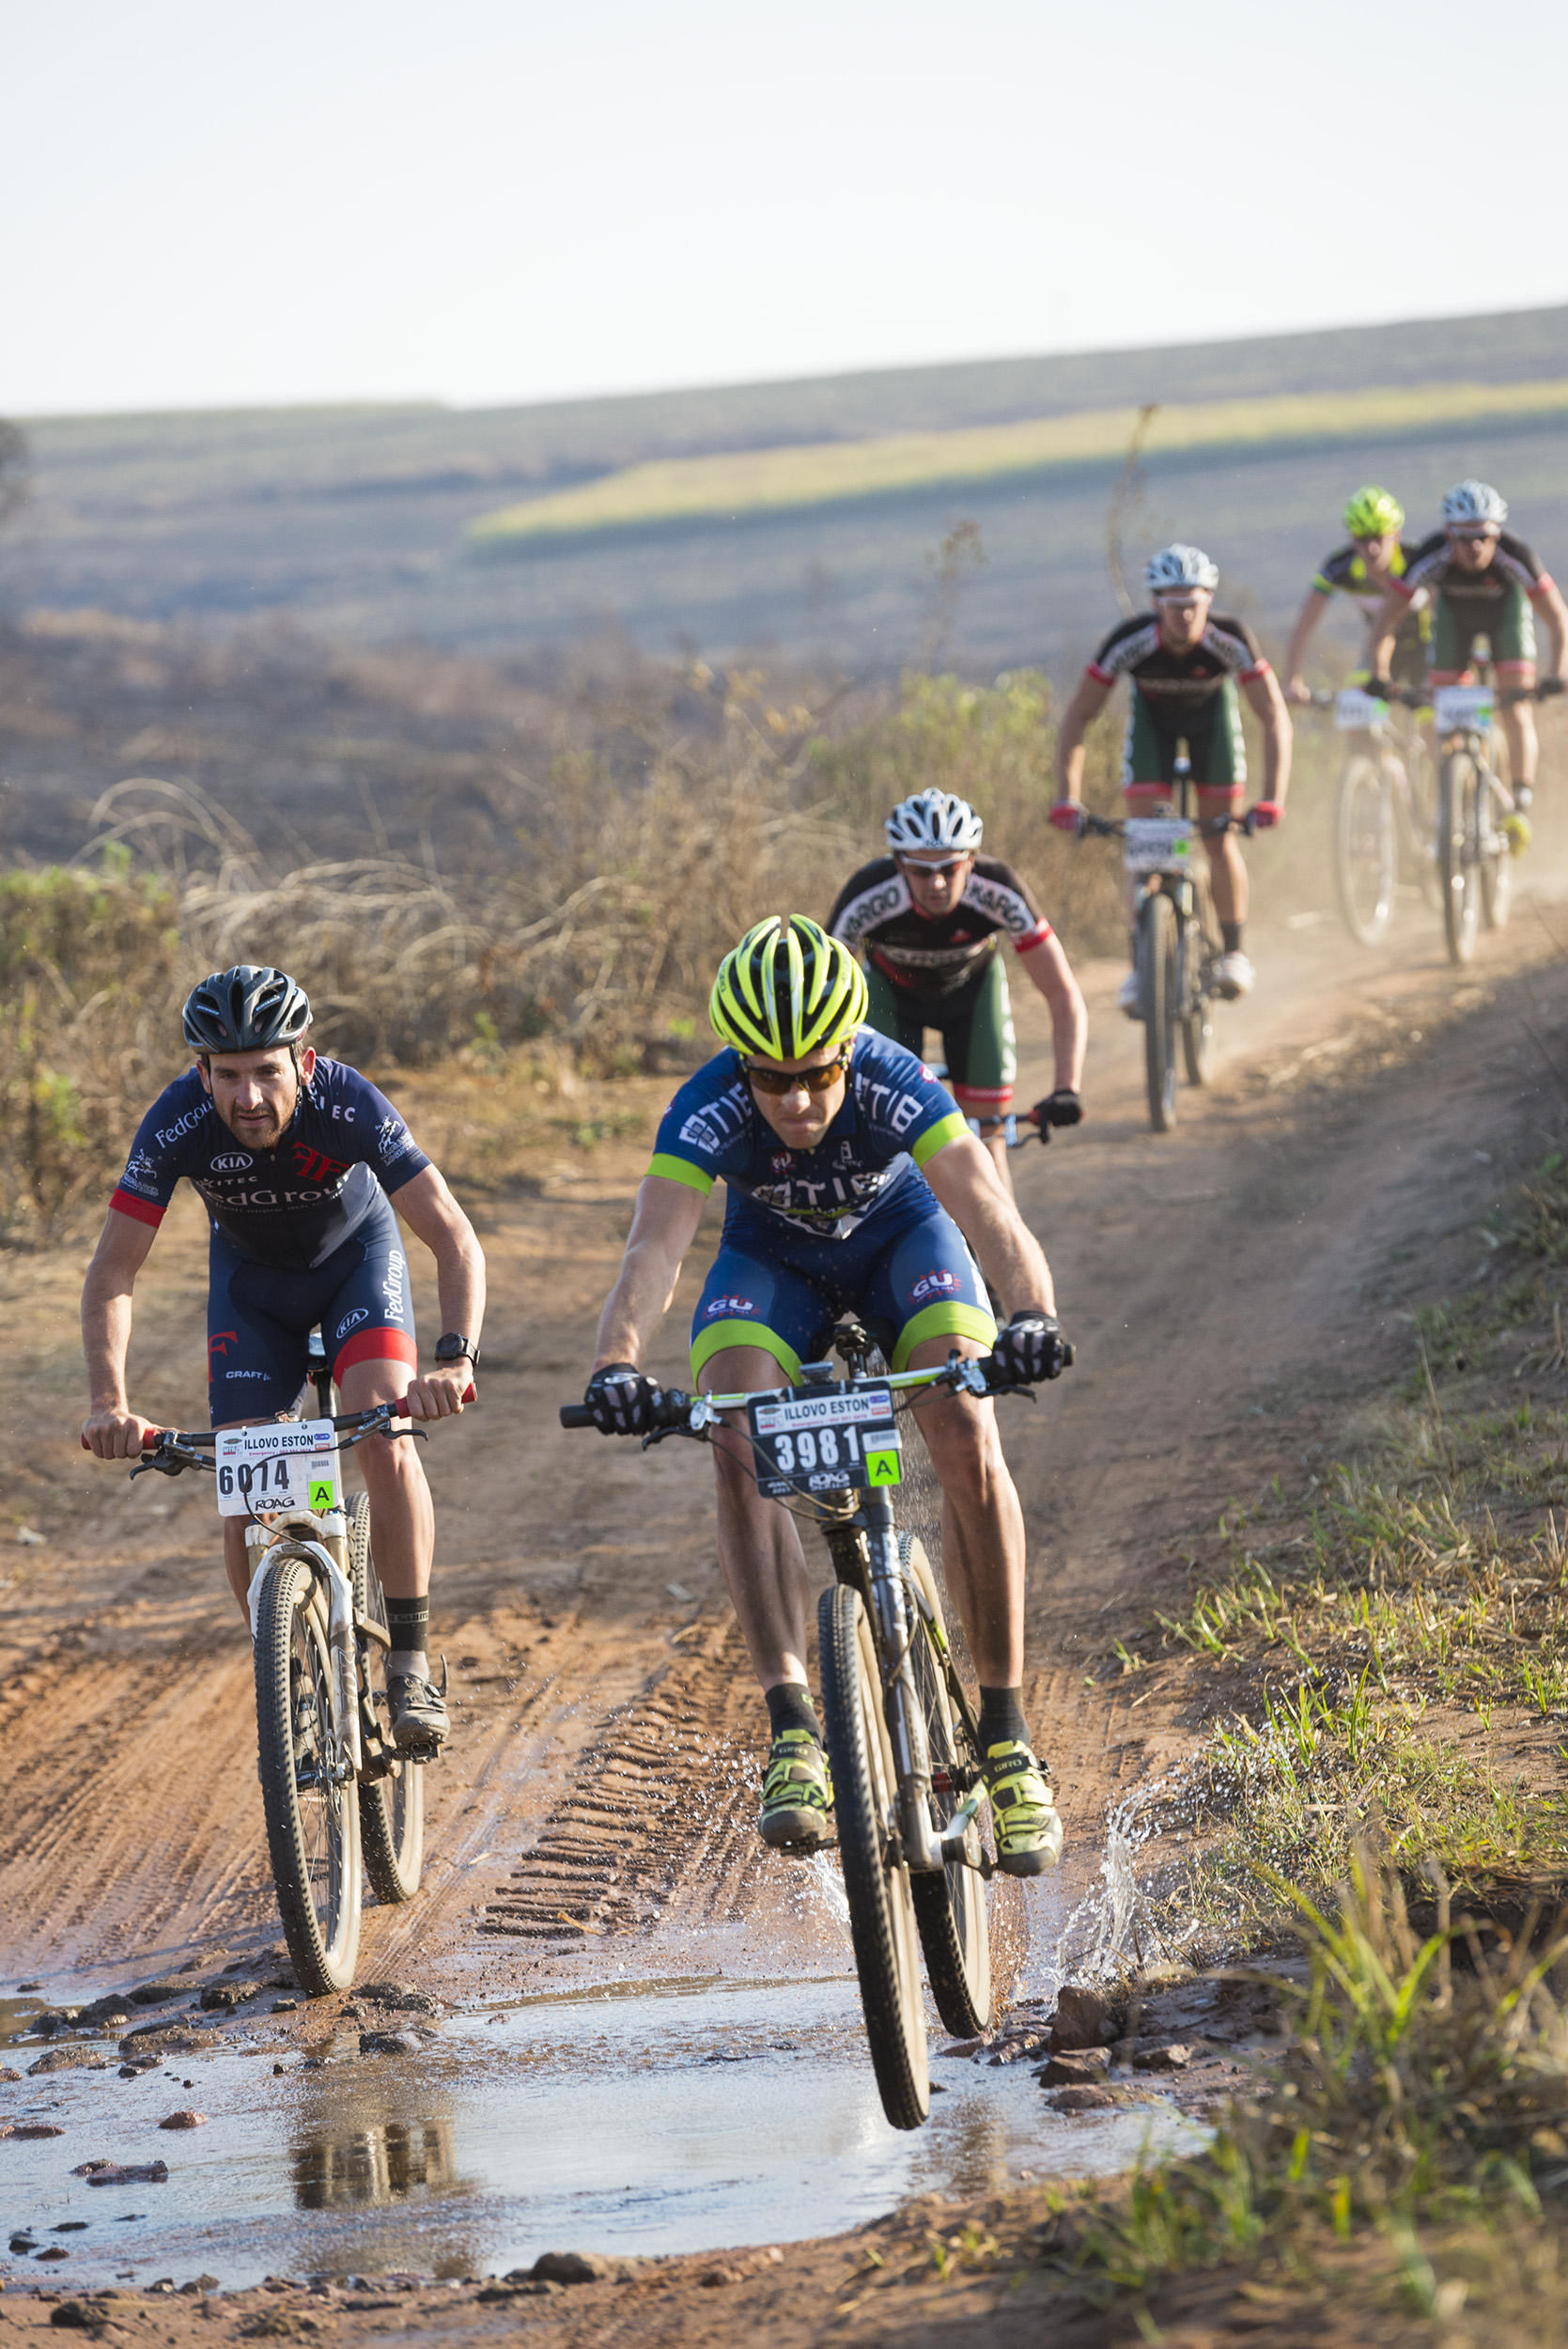 TIB Insurance's Andrew Hill will hope to fend off a strong men's field at this weekend's Sunday Tribune Jeep Hill2Hill, the penultimate event of the 2015 Quattro ROAG Series. Anthony Grote/ Gameplan Media